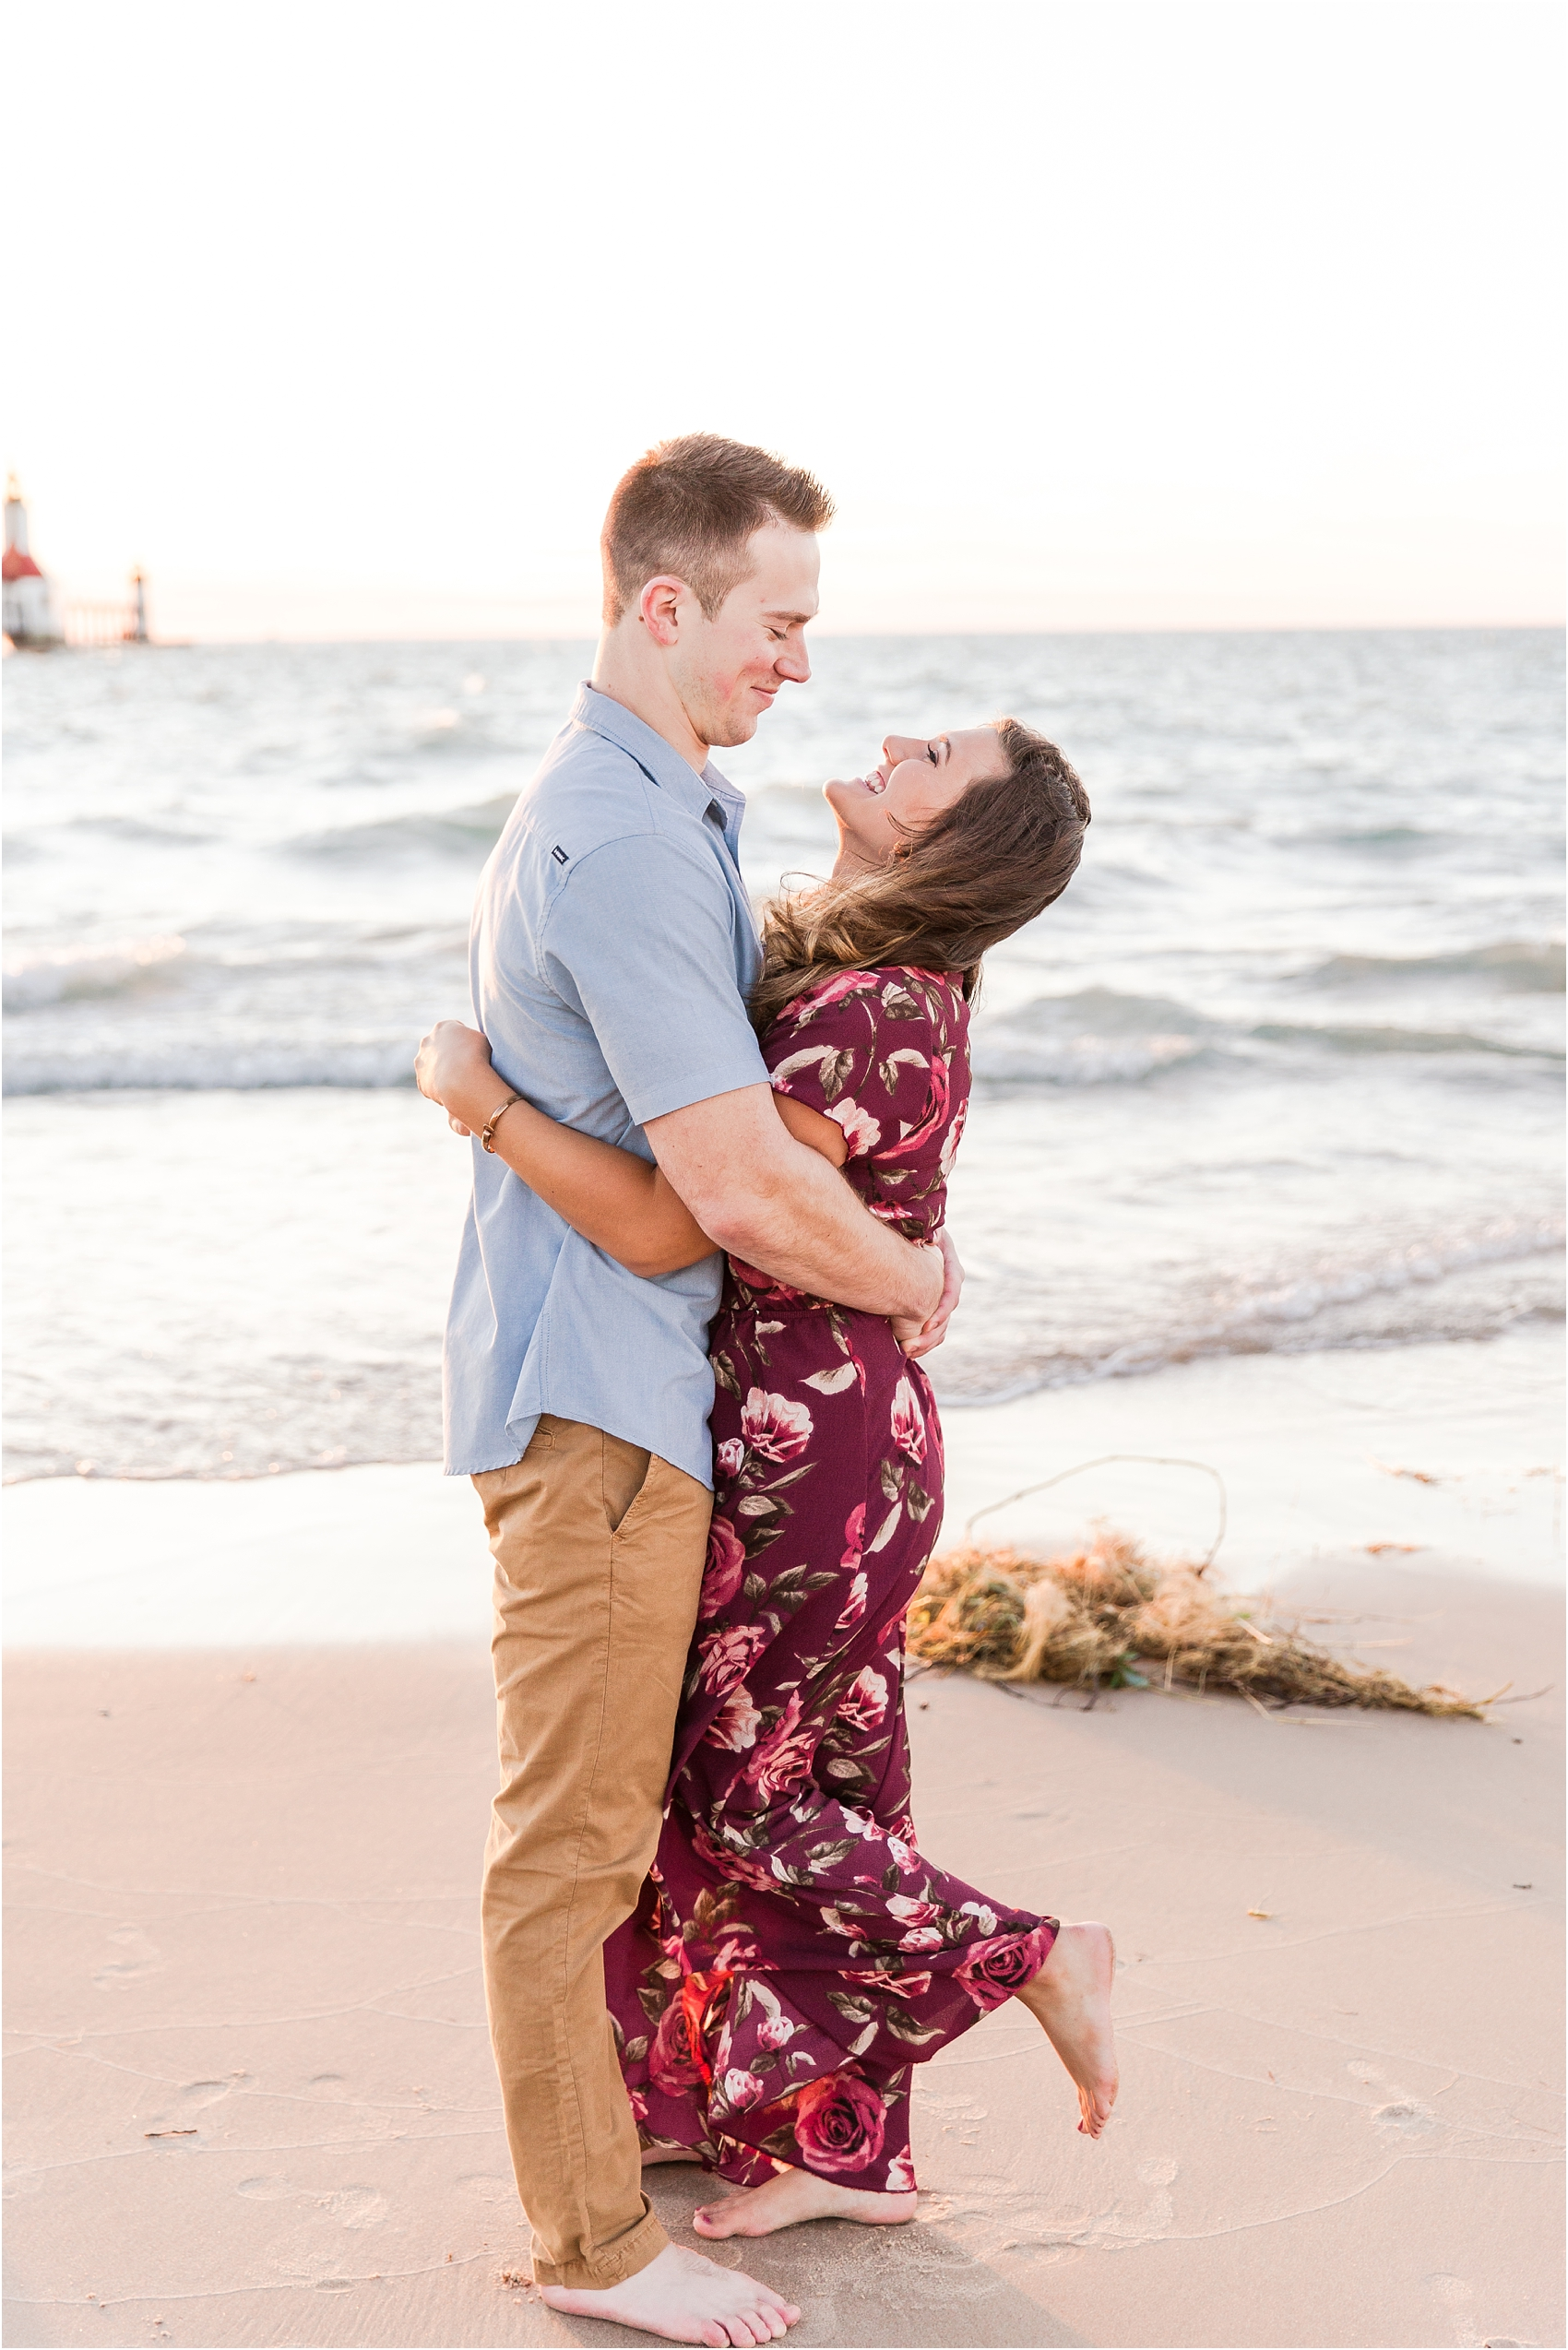 candid-end-of-summer-sunset-engagement-photos-at-silver-beach-in-st-joseph-mi-by-courtney-carolyn-photography_0032.jpg